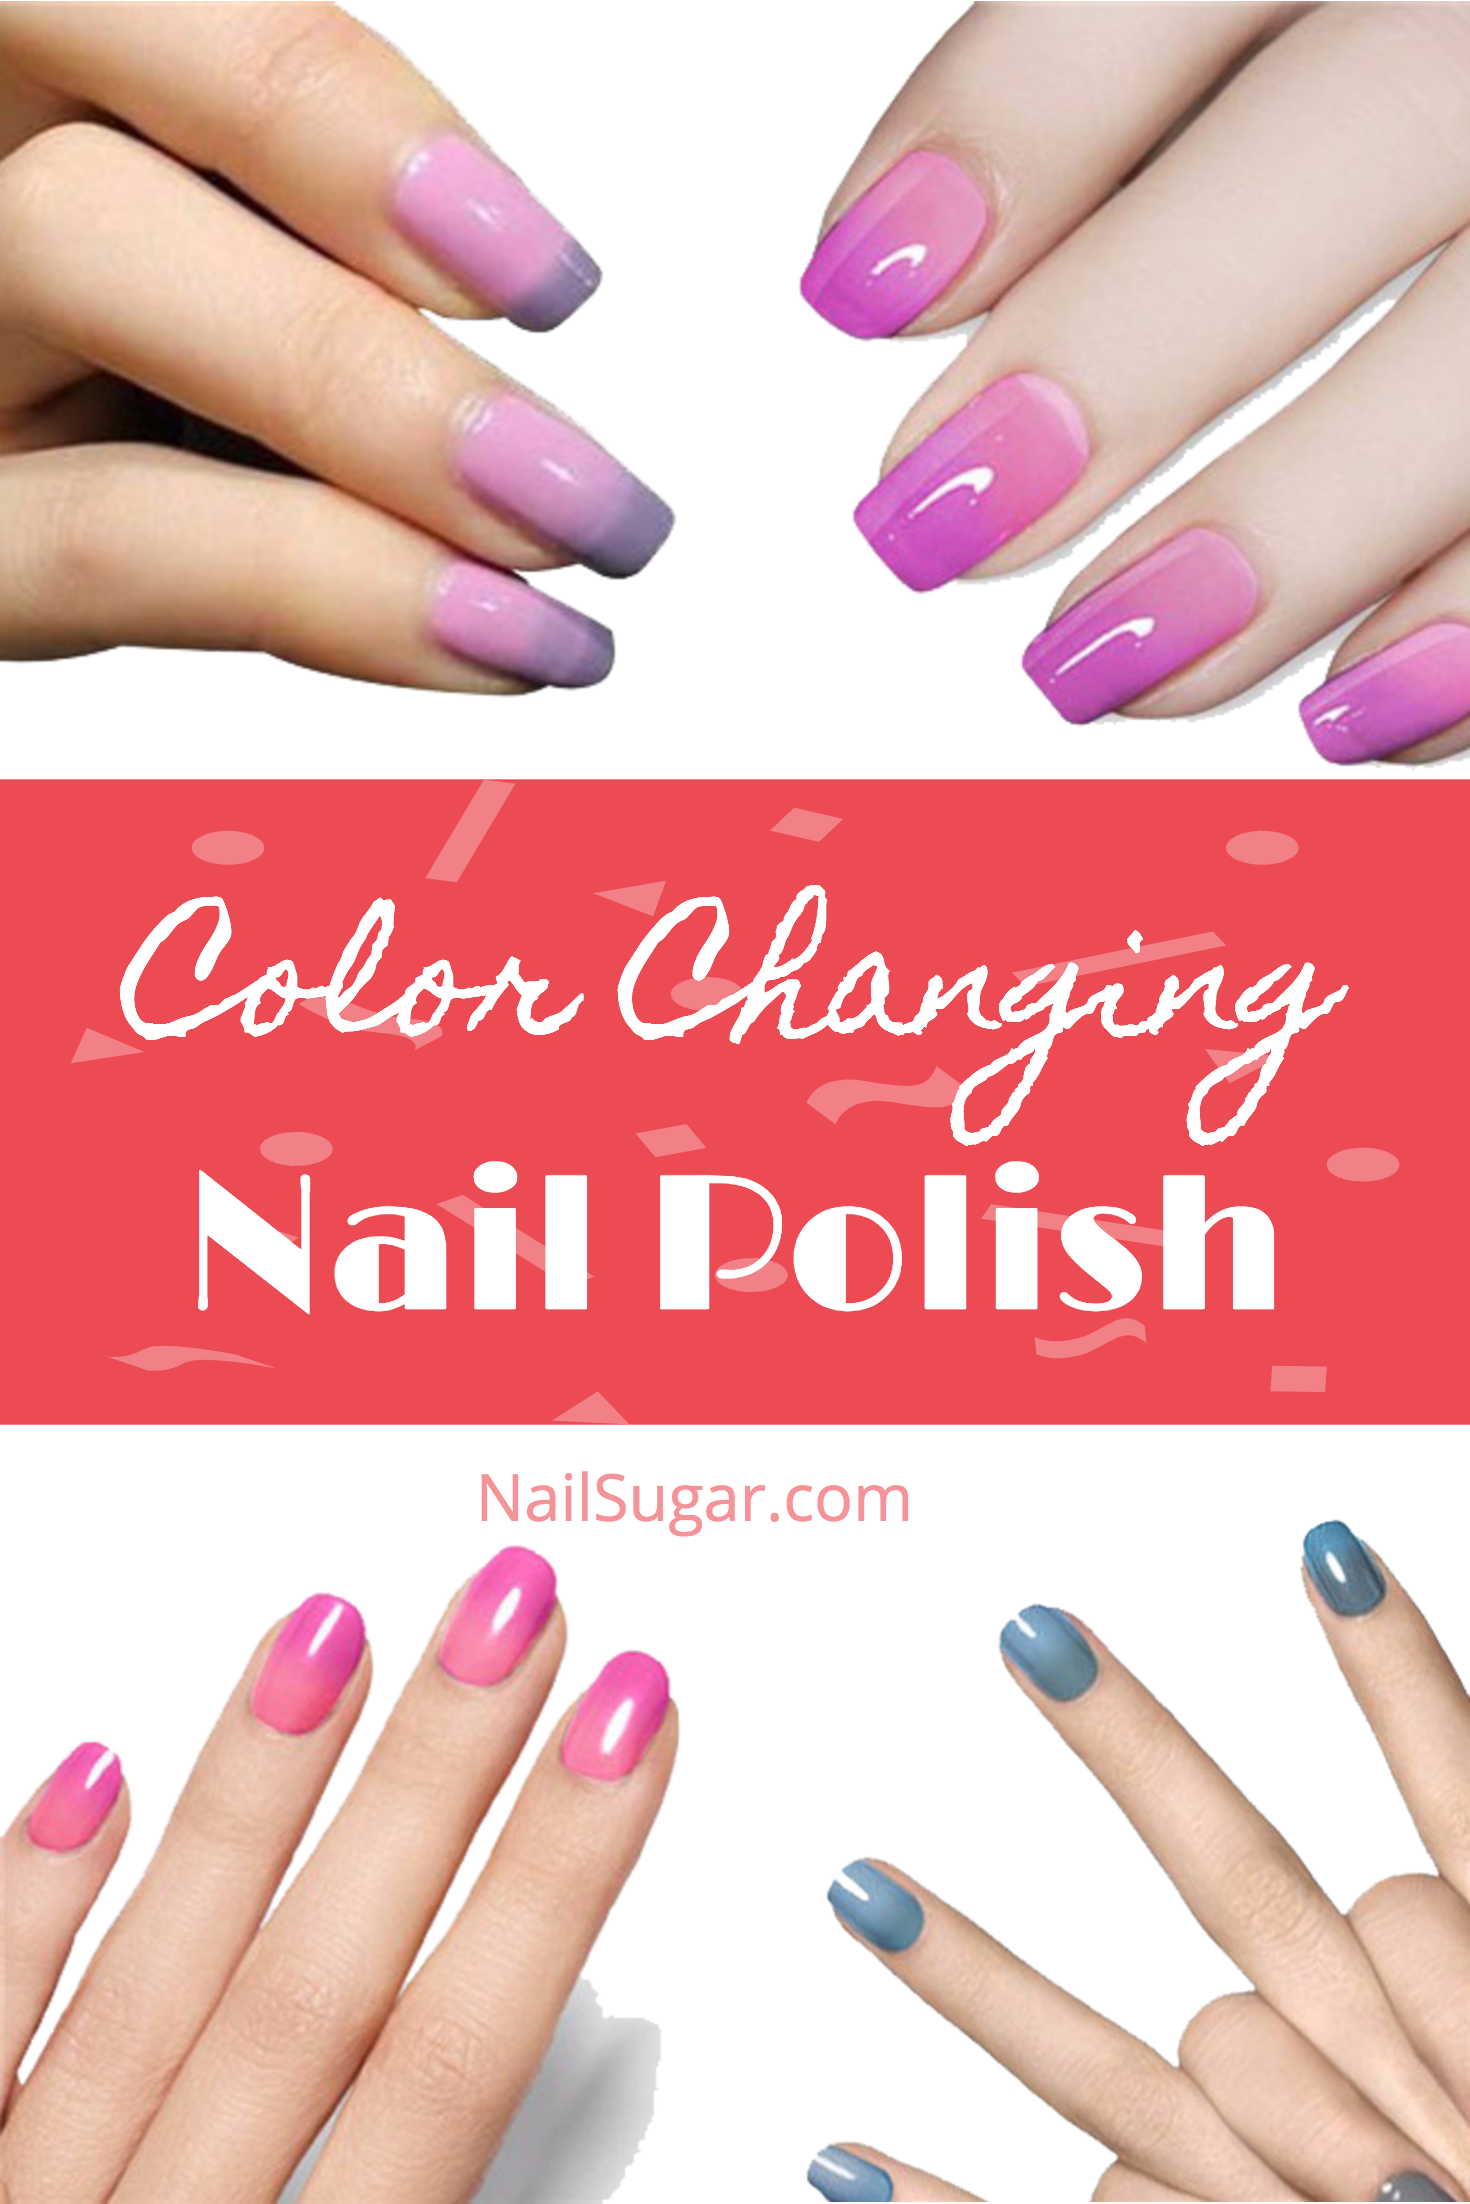 These Are Color Changing Nail Polishes Are So Pretty Easy Too Achieve That Ombre Look Without Trying Just Apply And Let With Images Nail Polish Color Change Nail Polish